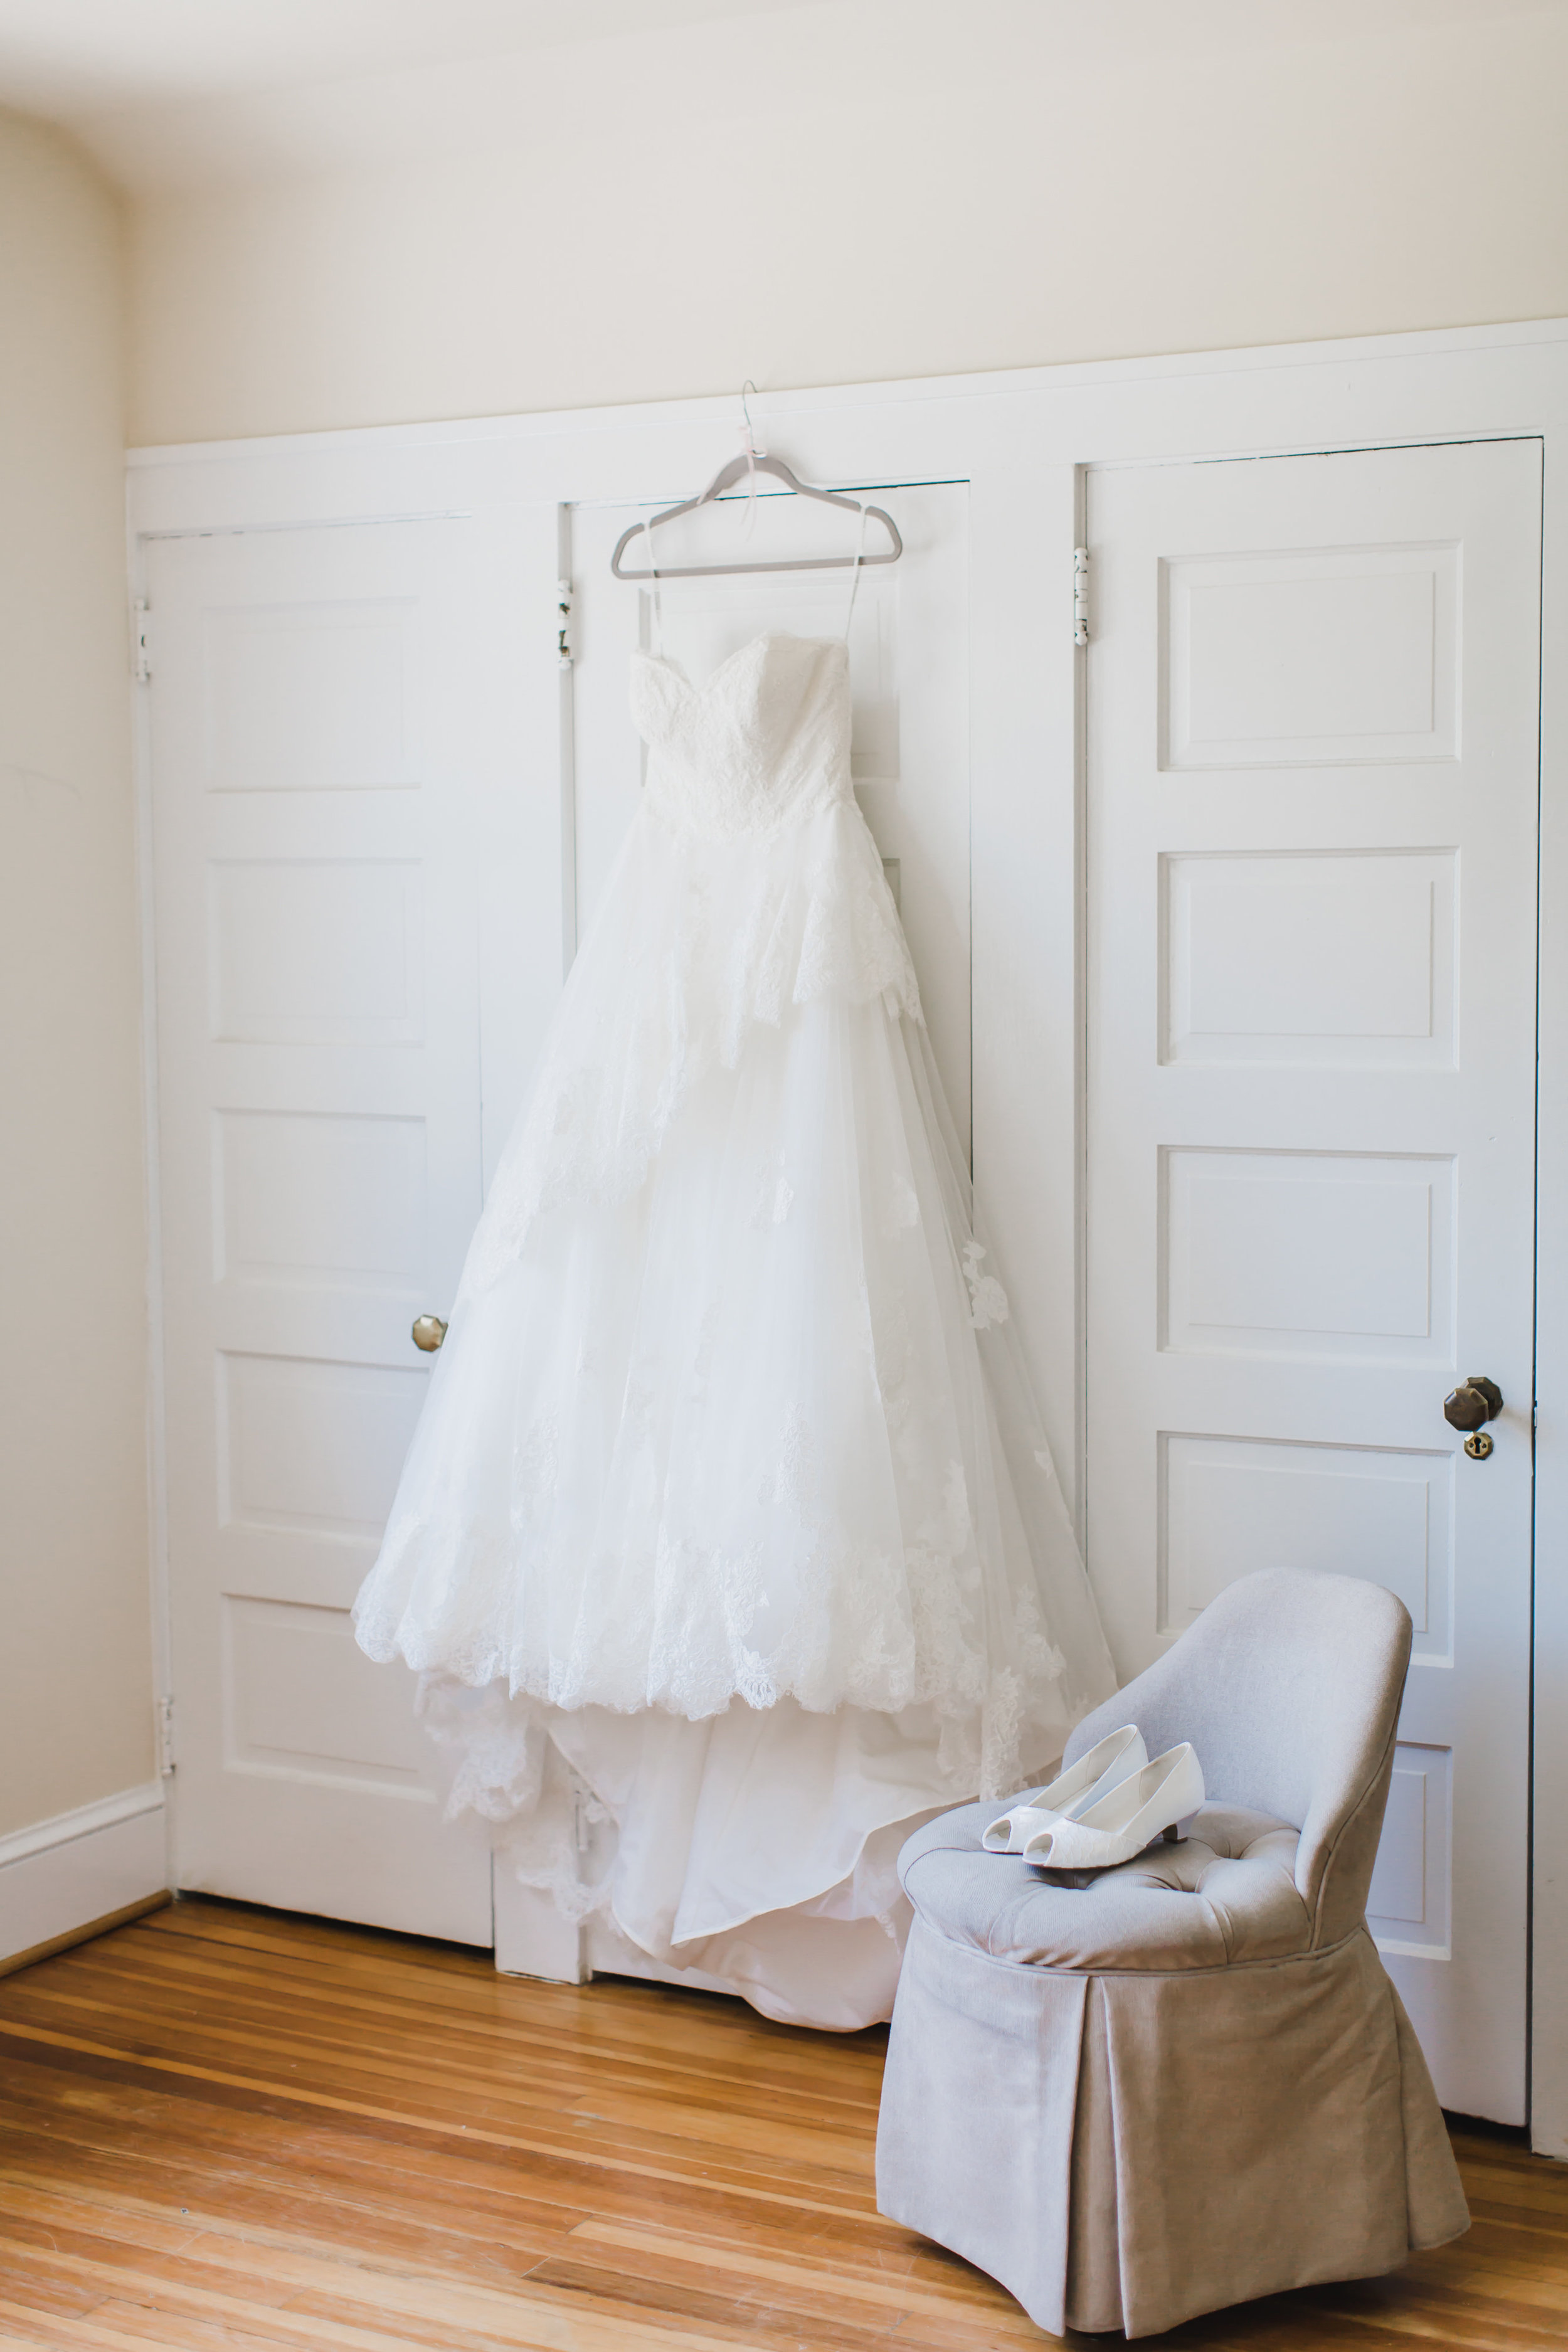 This is where having an experienced photographer came in handy. Anna emailed me the week prior asking if she could use the room where the men get ready to have Ally put her dress on. The lighting, the simplicity, it all made sense when I saw these images!